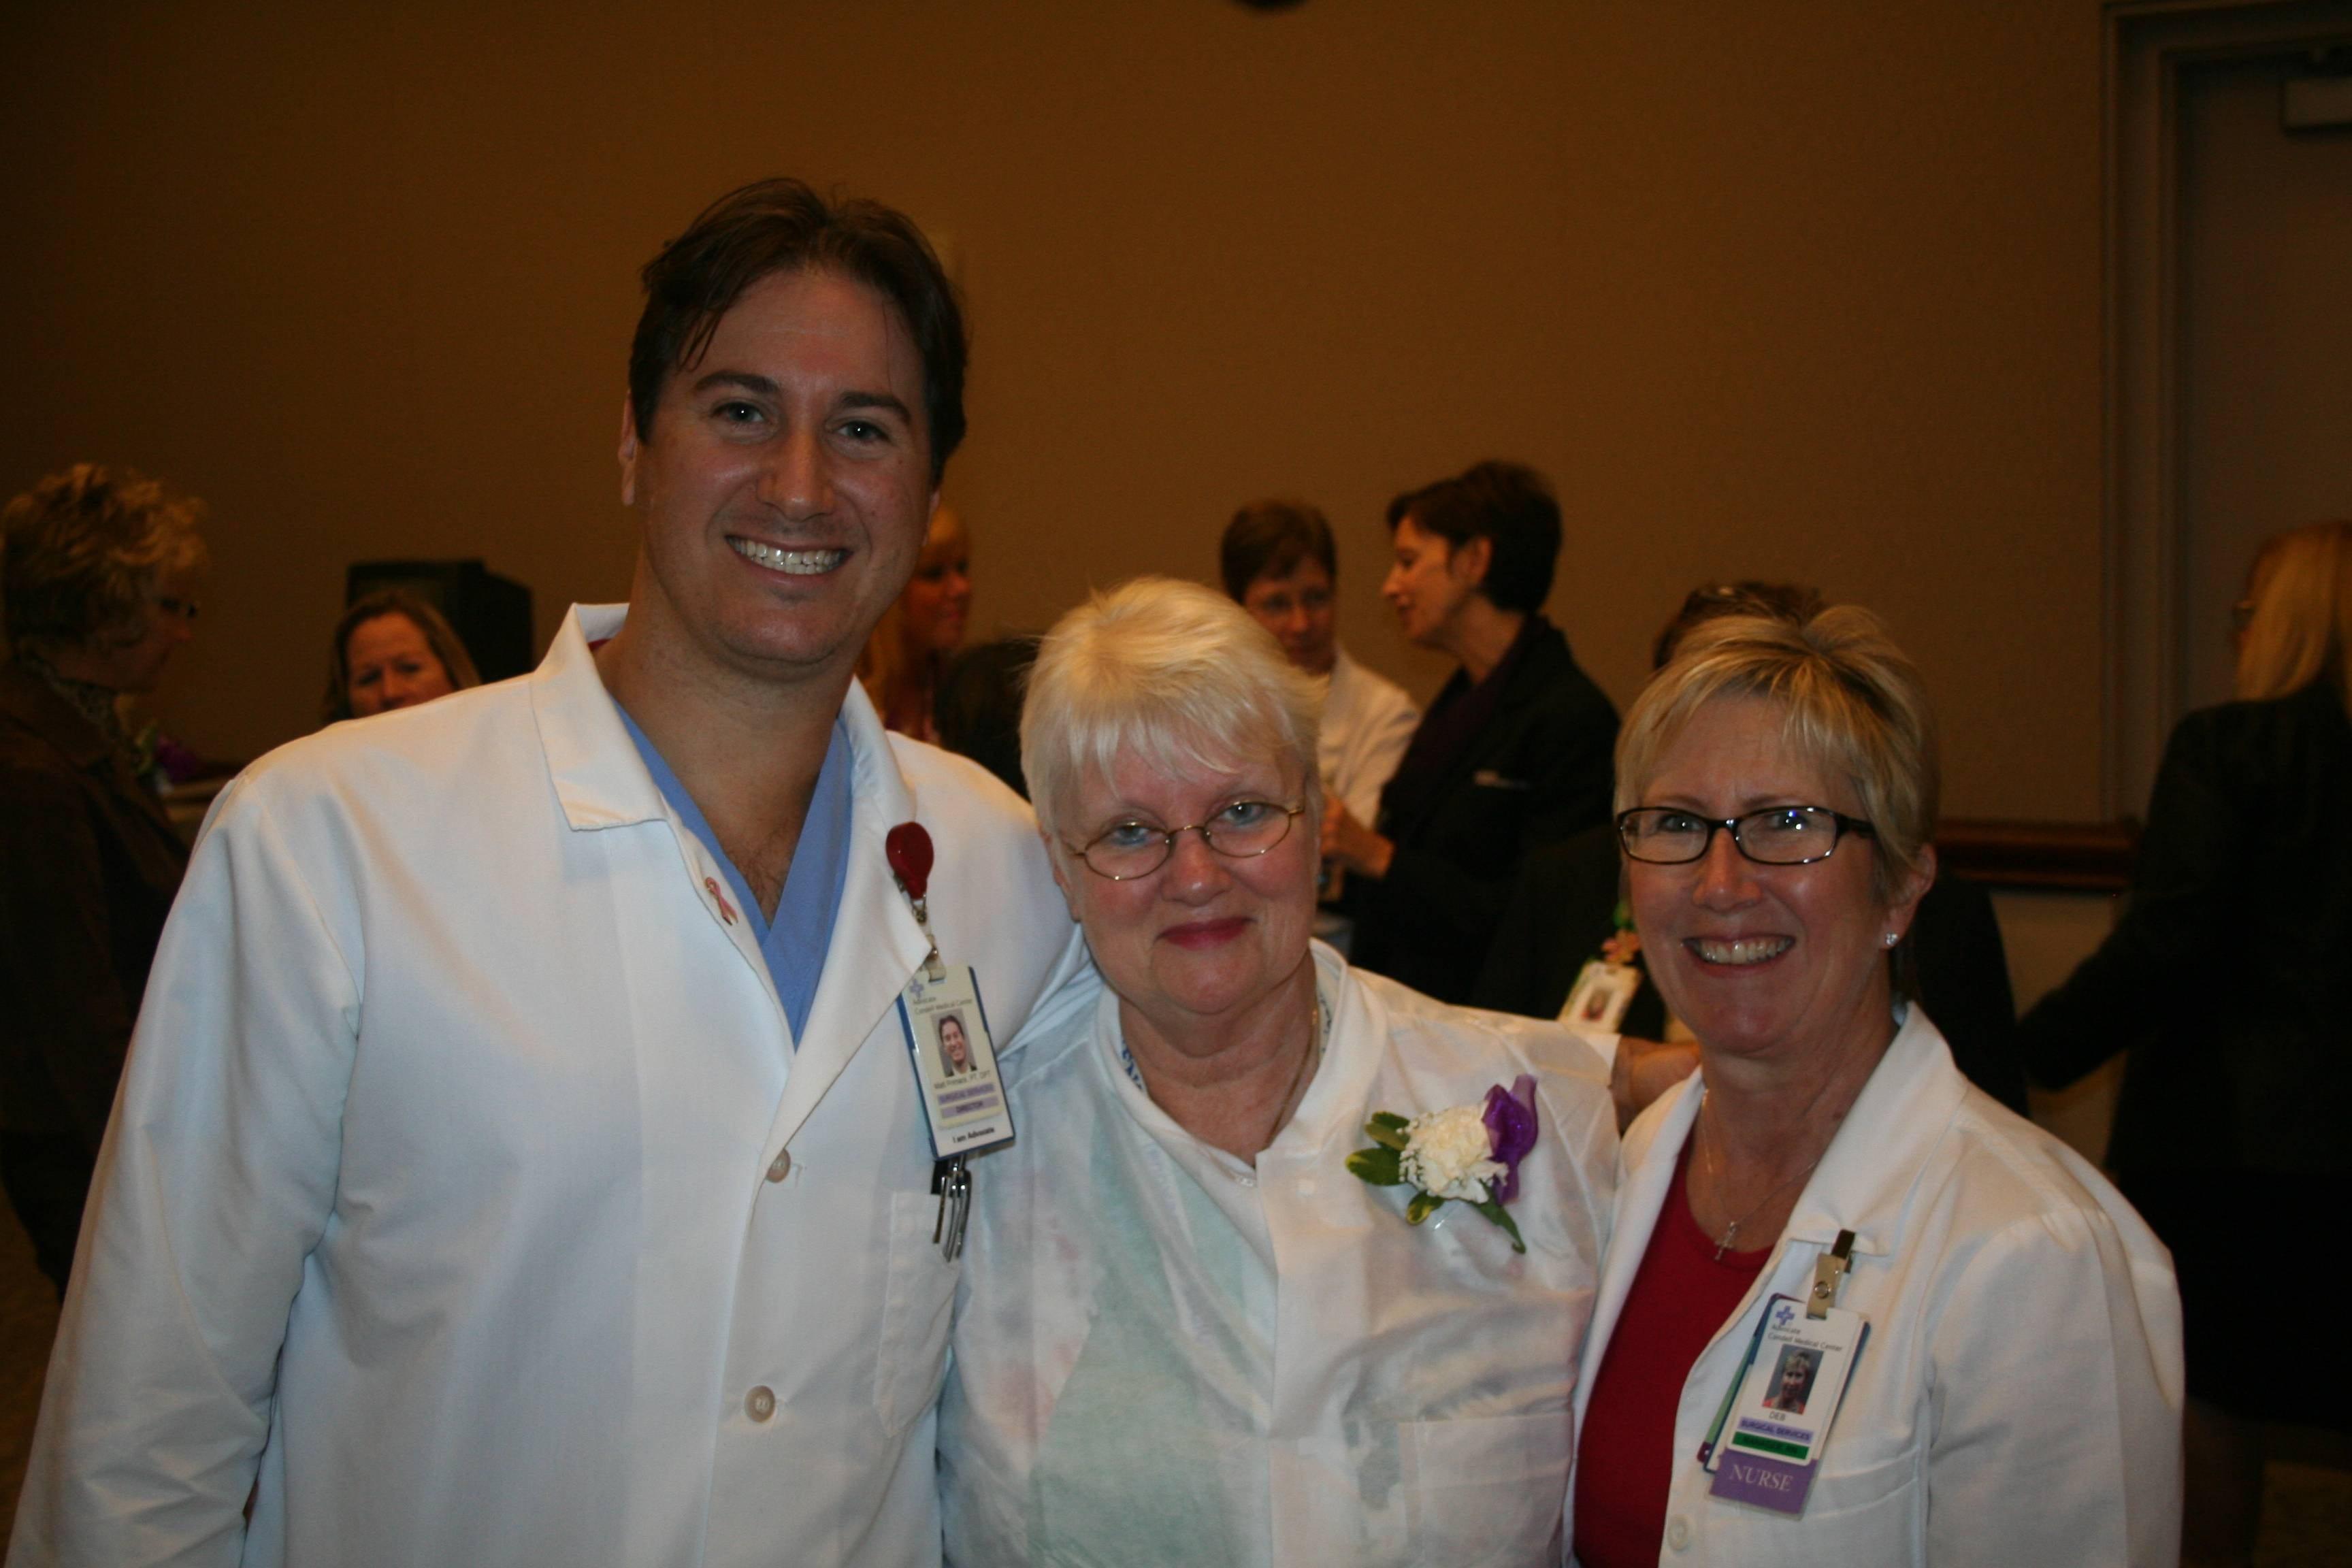 L to R: Matt Primack, Advocate Condell Vice President of Clinical Institutes; Jane Brown, RN; Deborah Spiewak, Advocate Condell Manager GI and Perioperative Services.